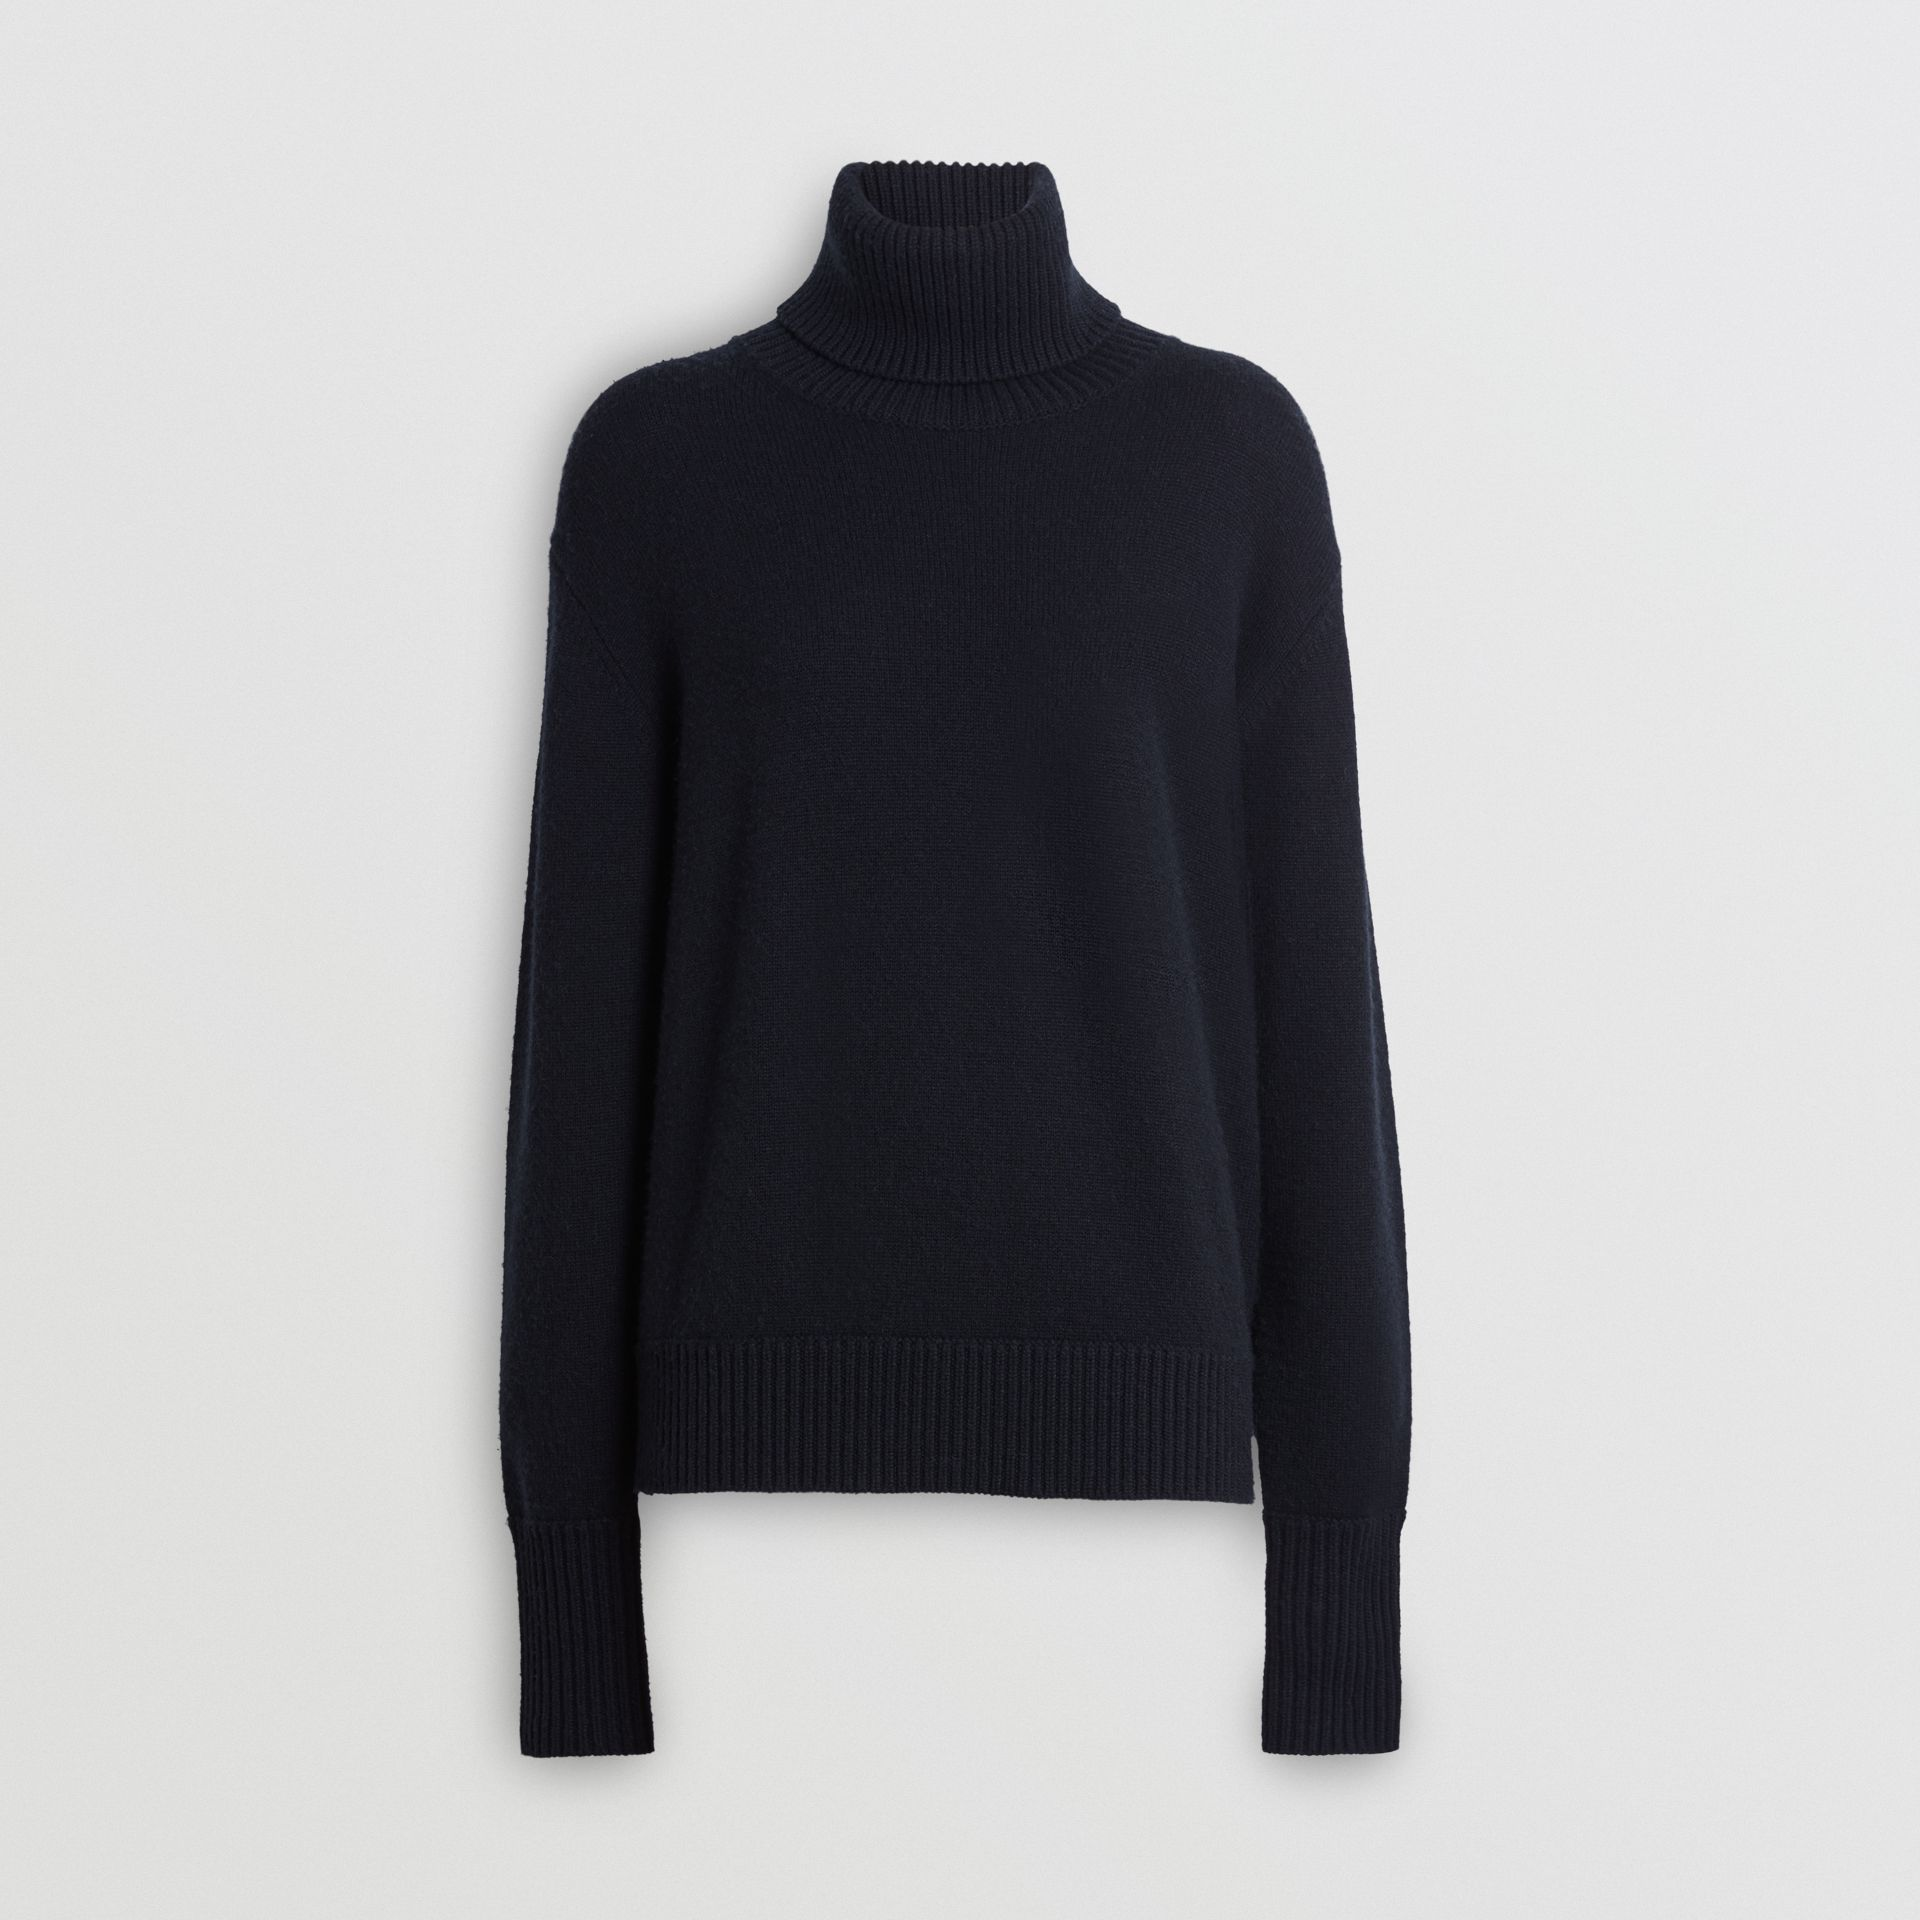 Embroidered Crest Cashmere Roll-neck Sweater in Navy - Women | Burberry - gallery image 3